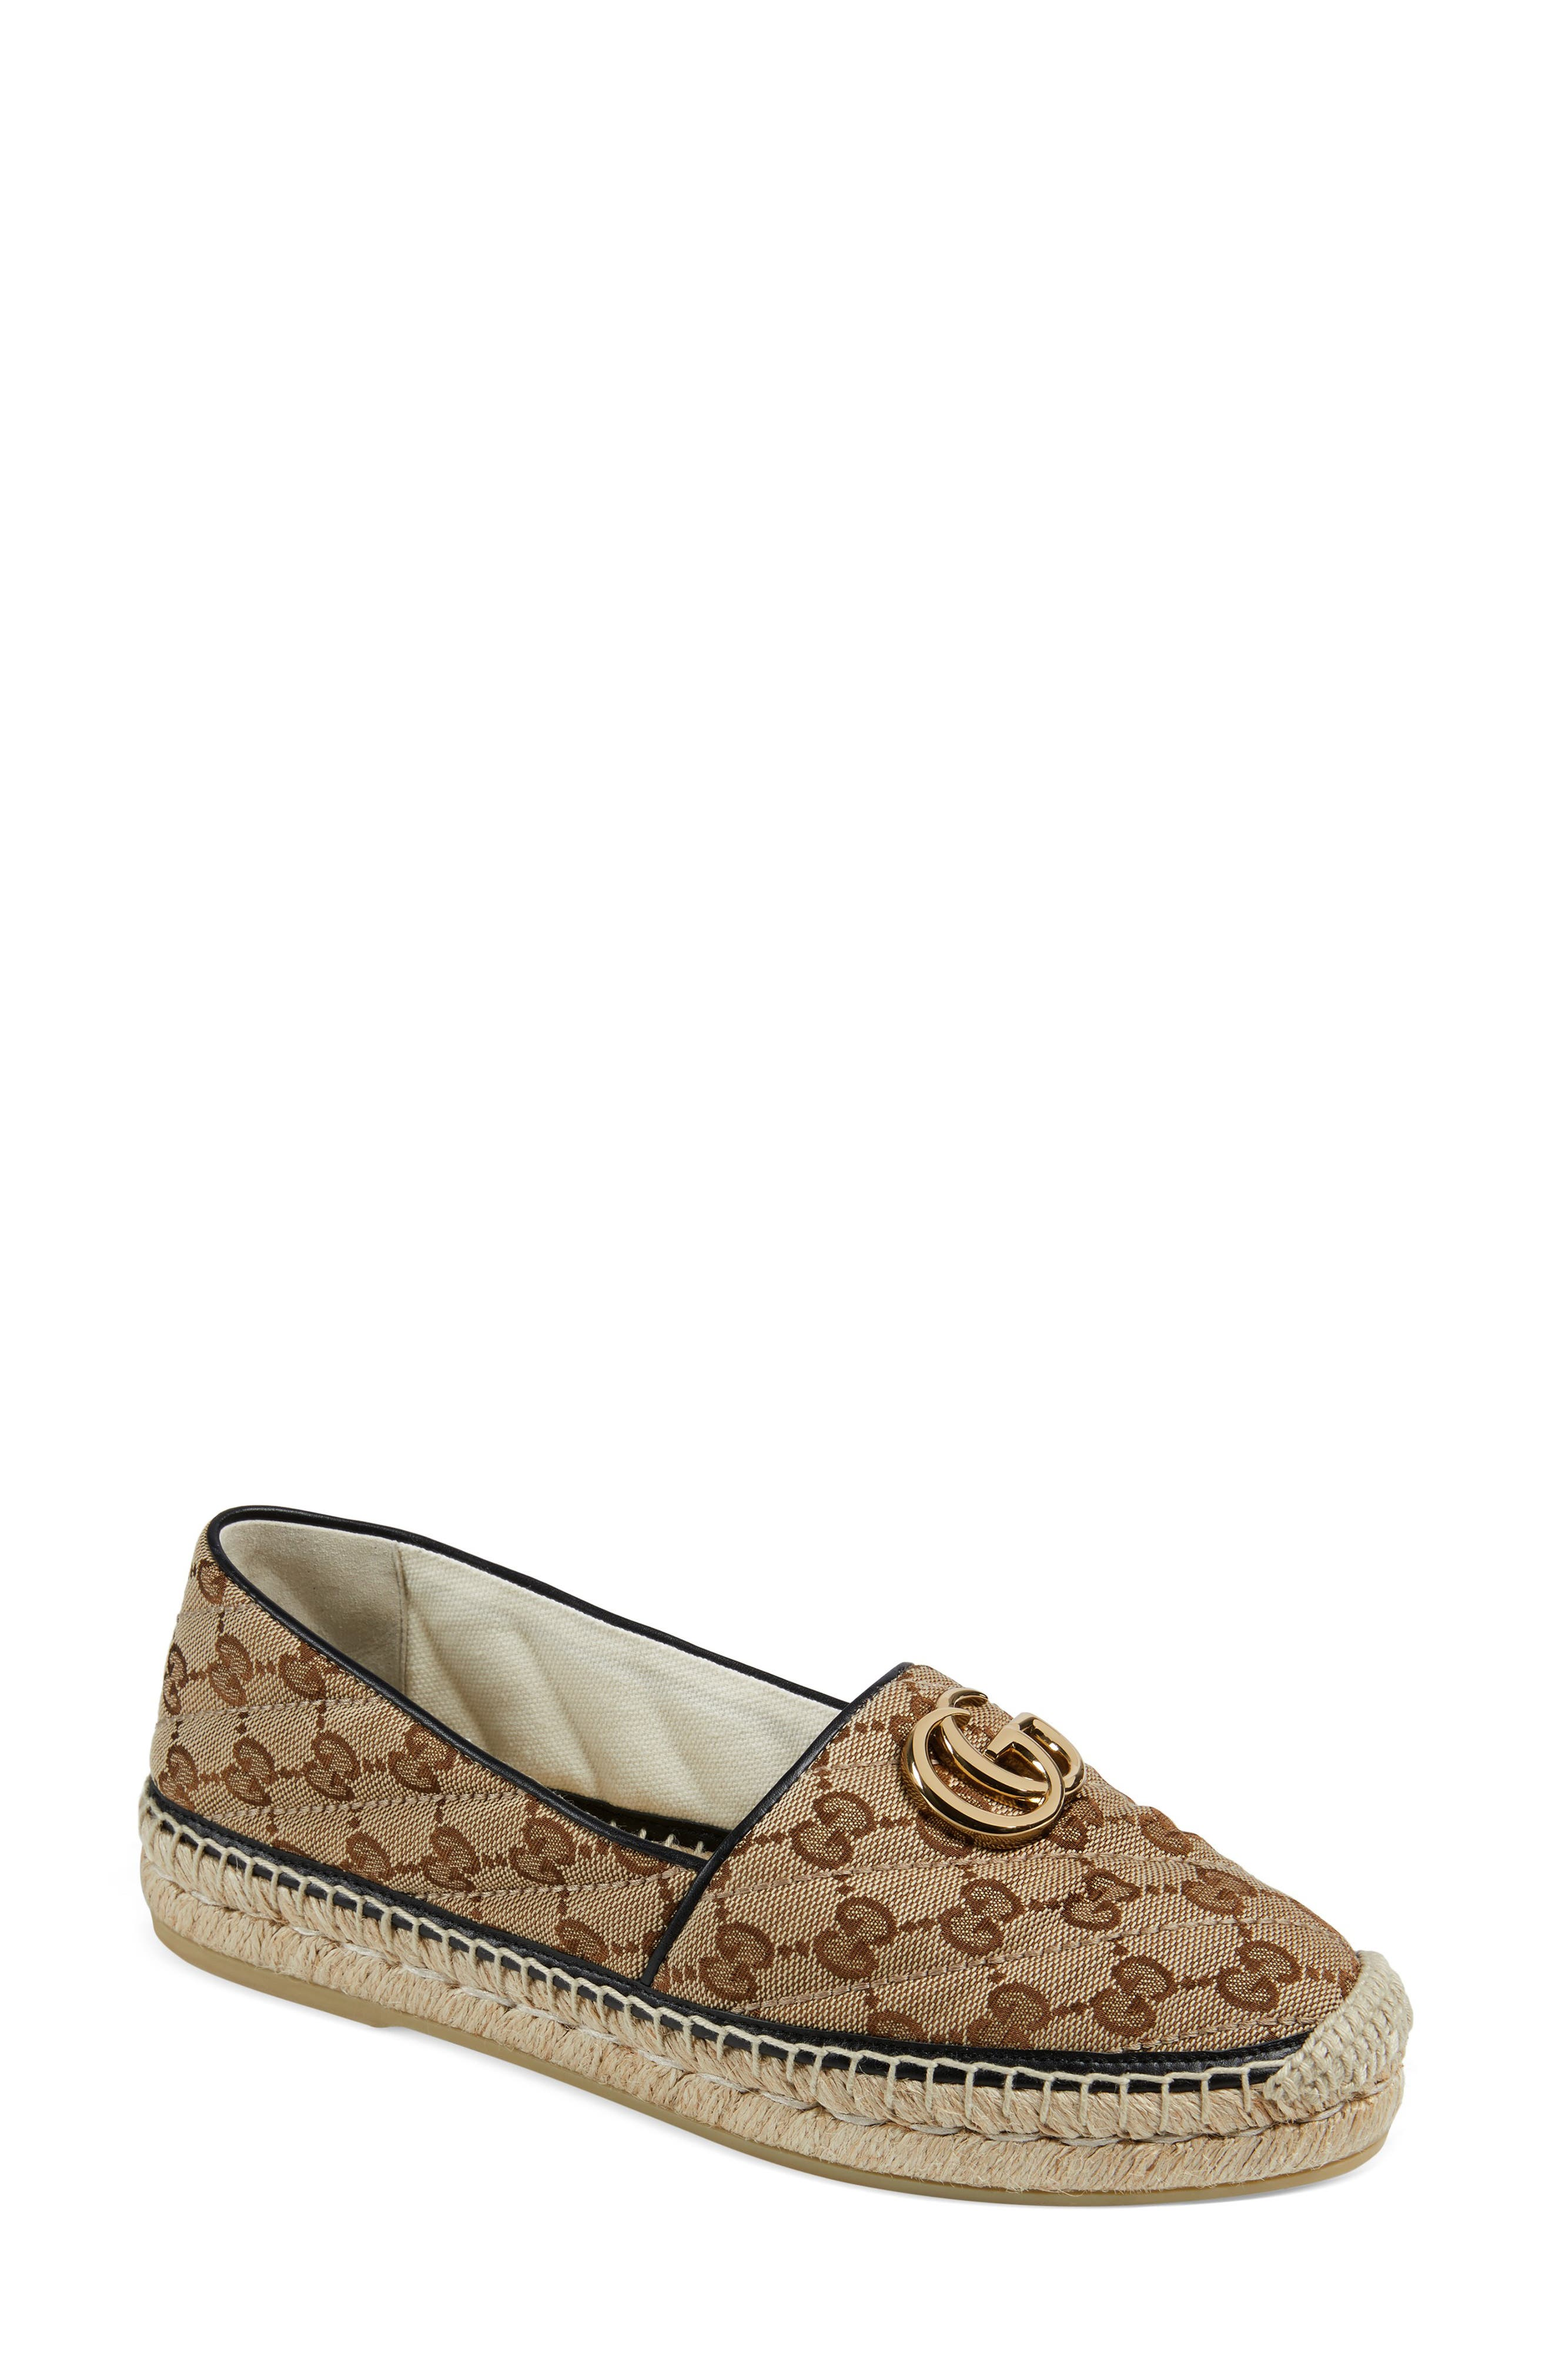 gucci flat shoes price